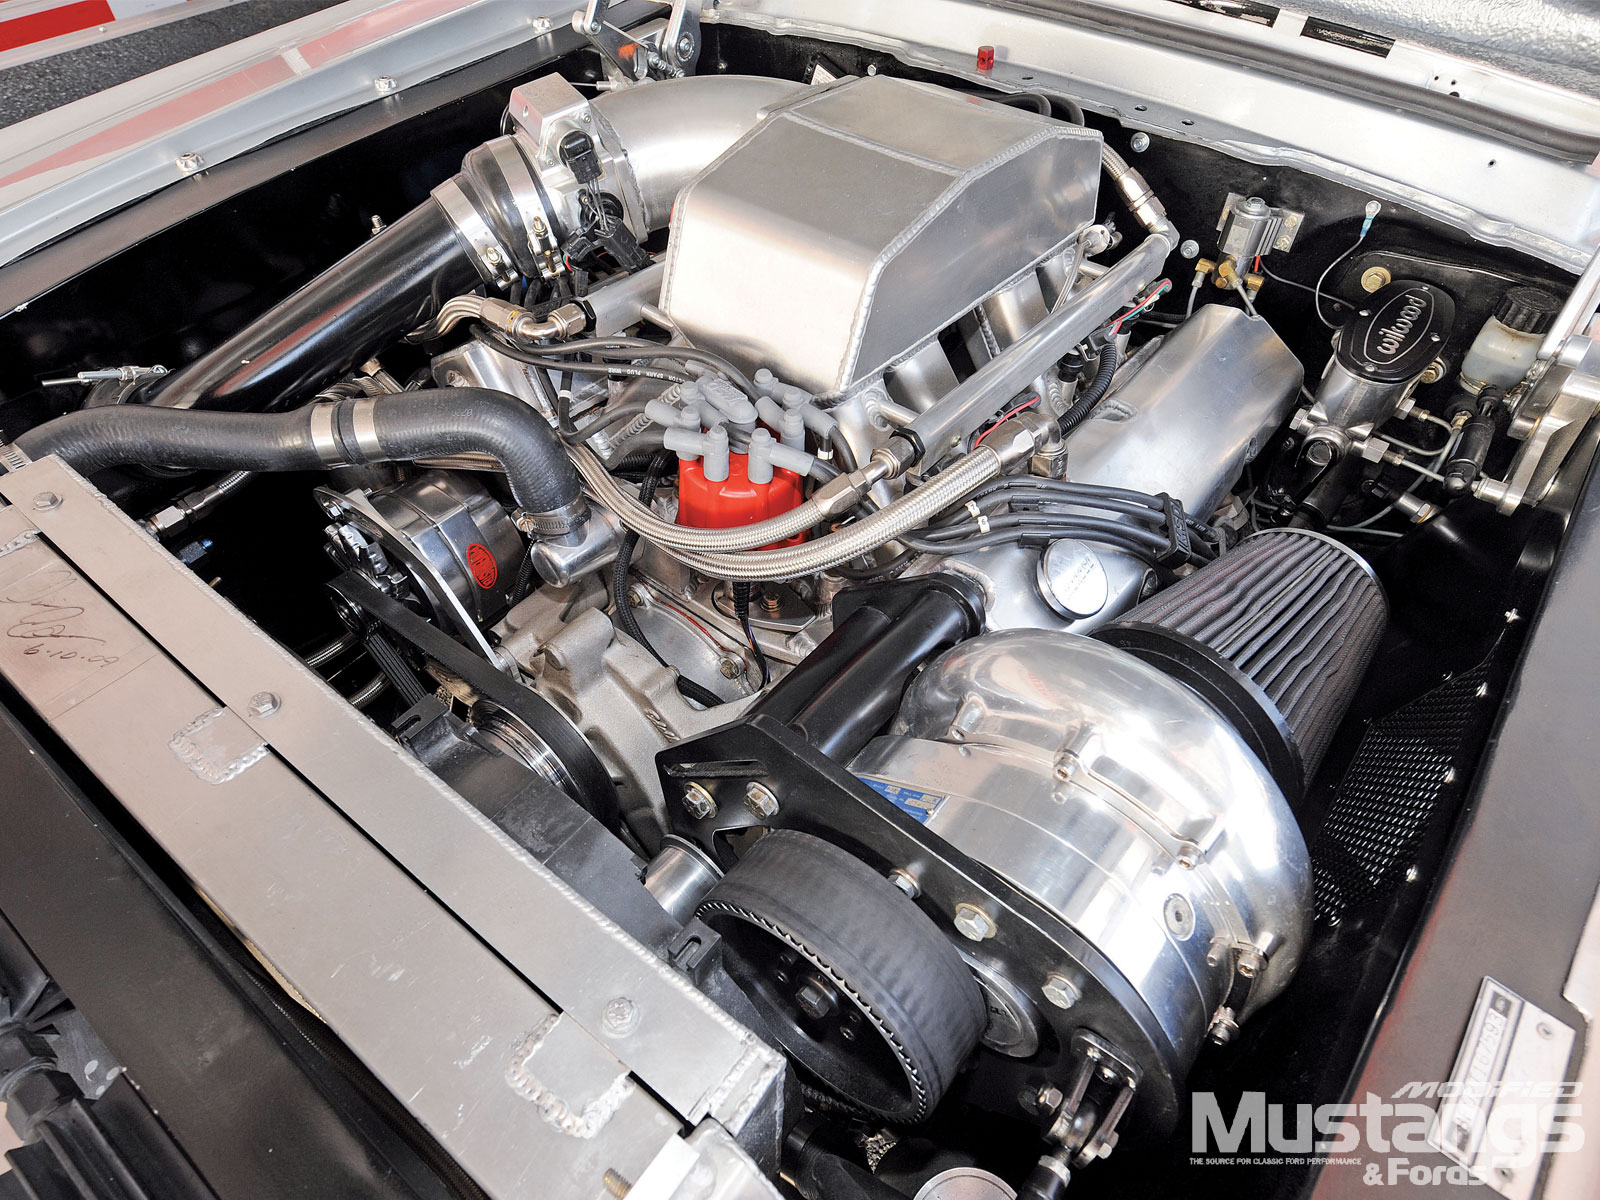 1968 Ford Mustang Fastback Engine